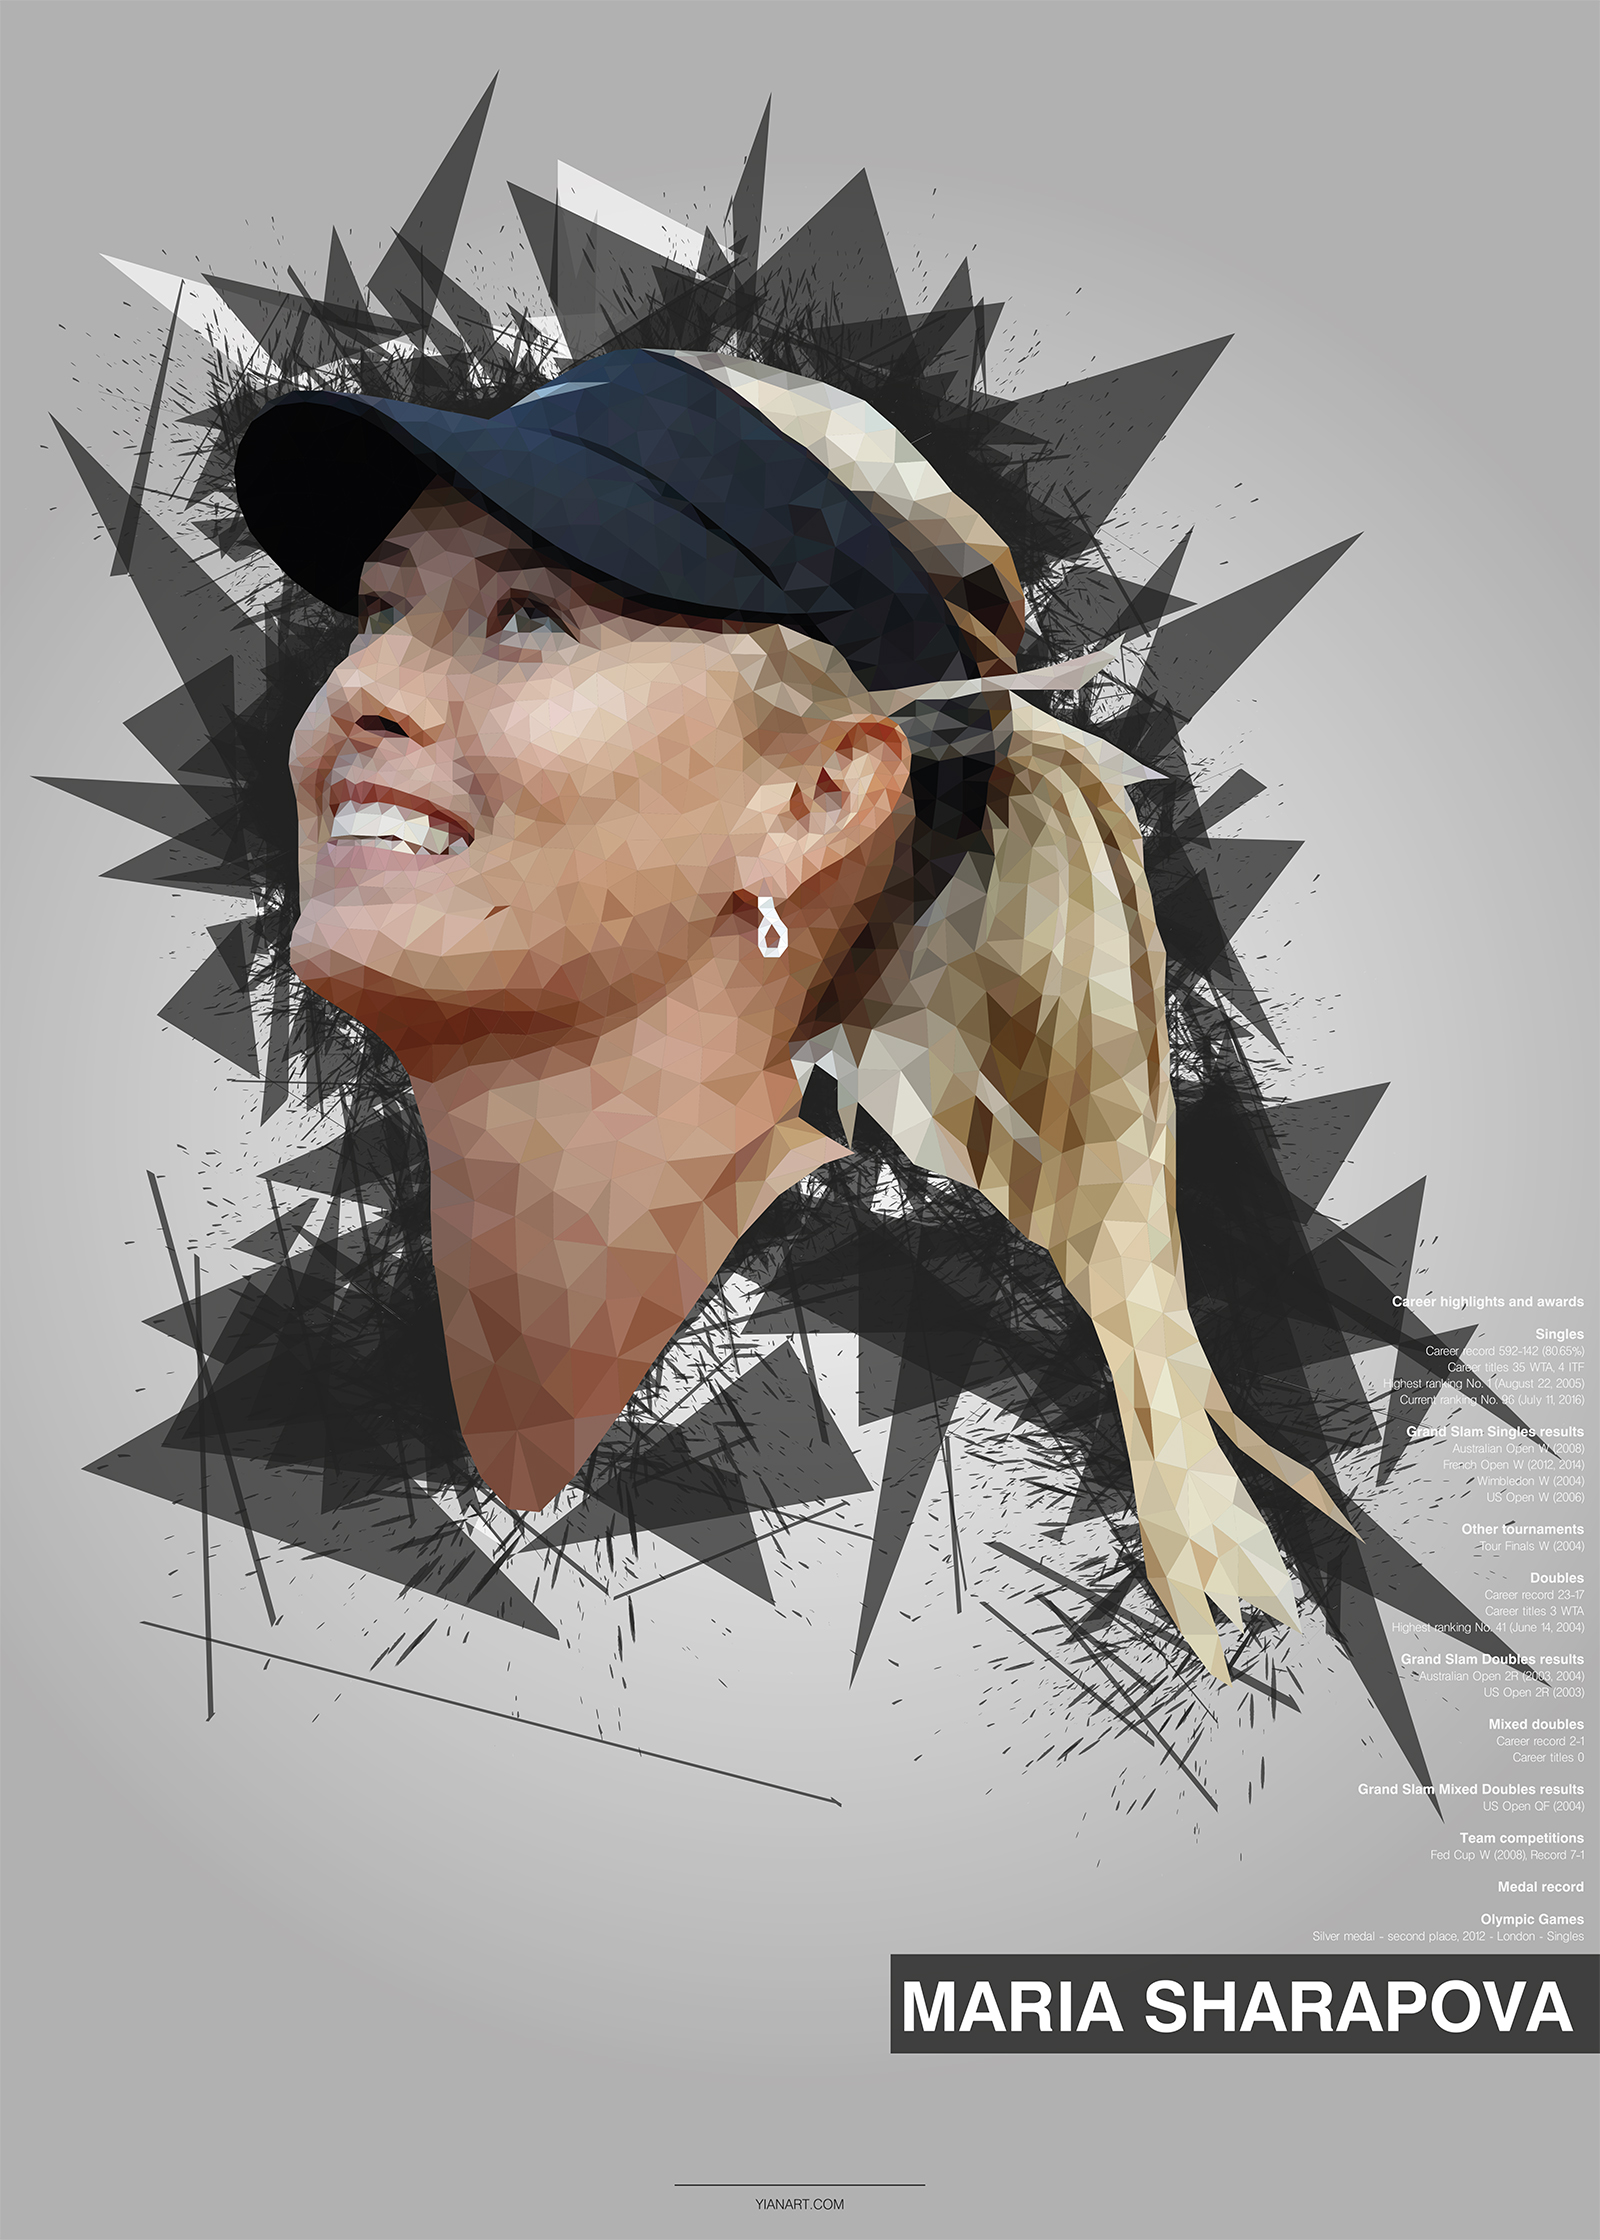 Maria Sharapova - Top Athletes Low Poly Design_yianart.com